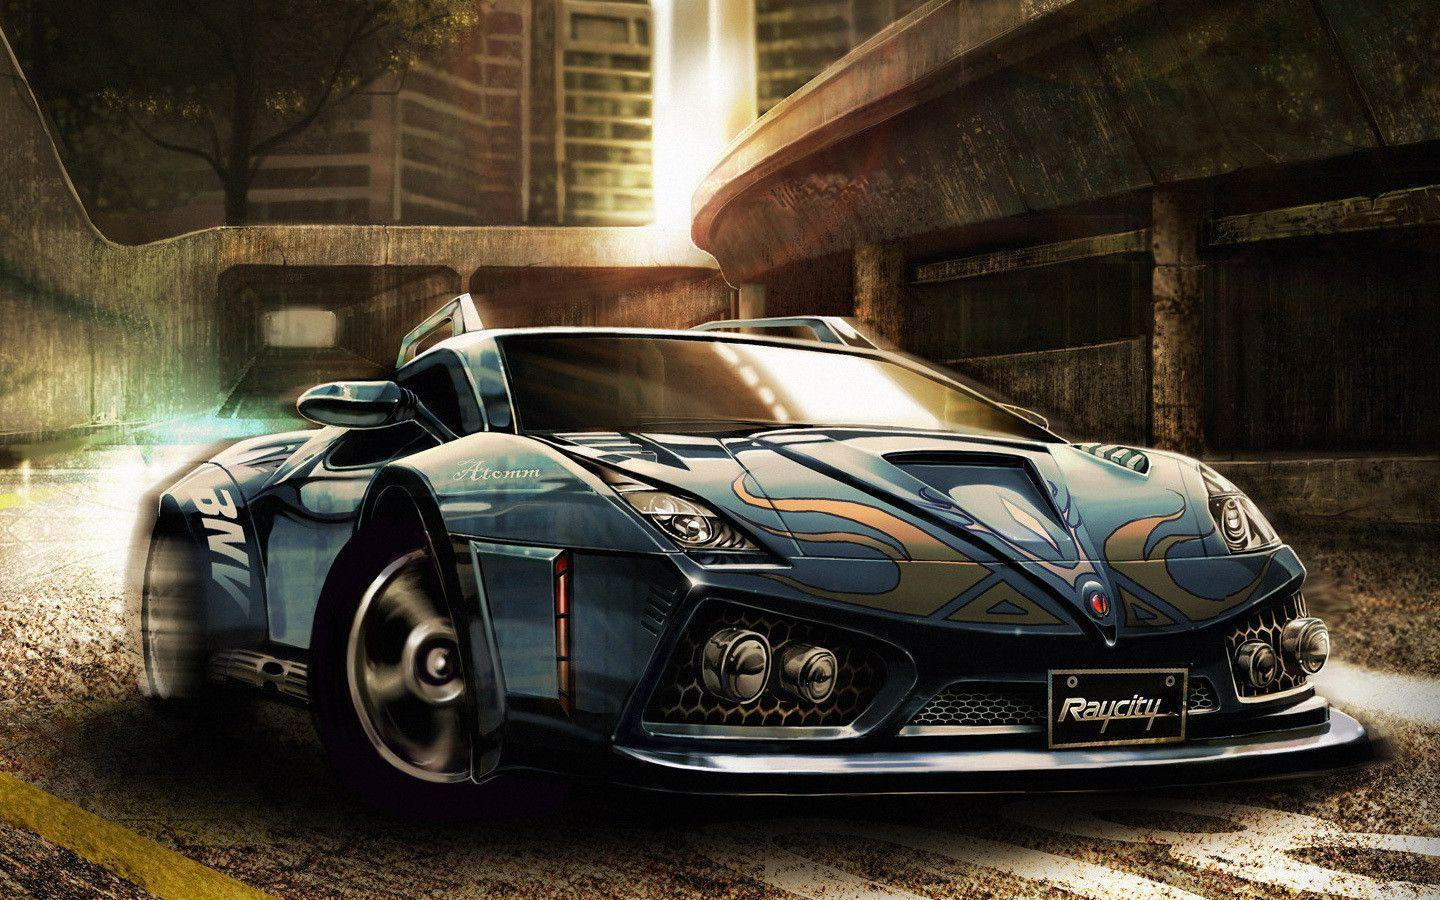 Cool Hd Car Wallpapers Hq Desktop 16 HD Wallpapers | Hdimges.